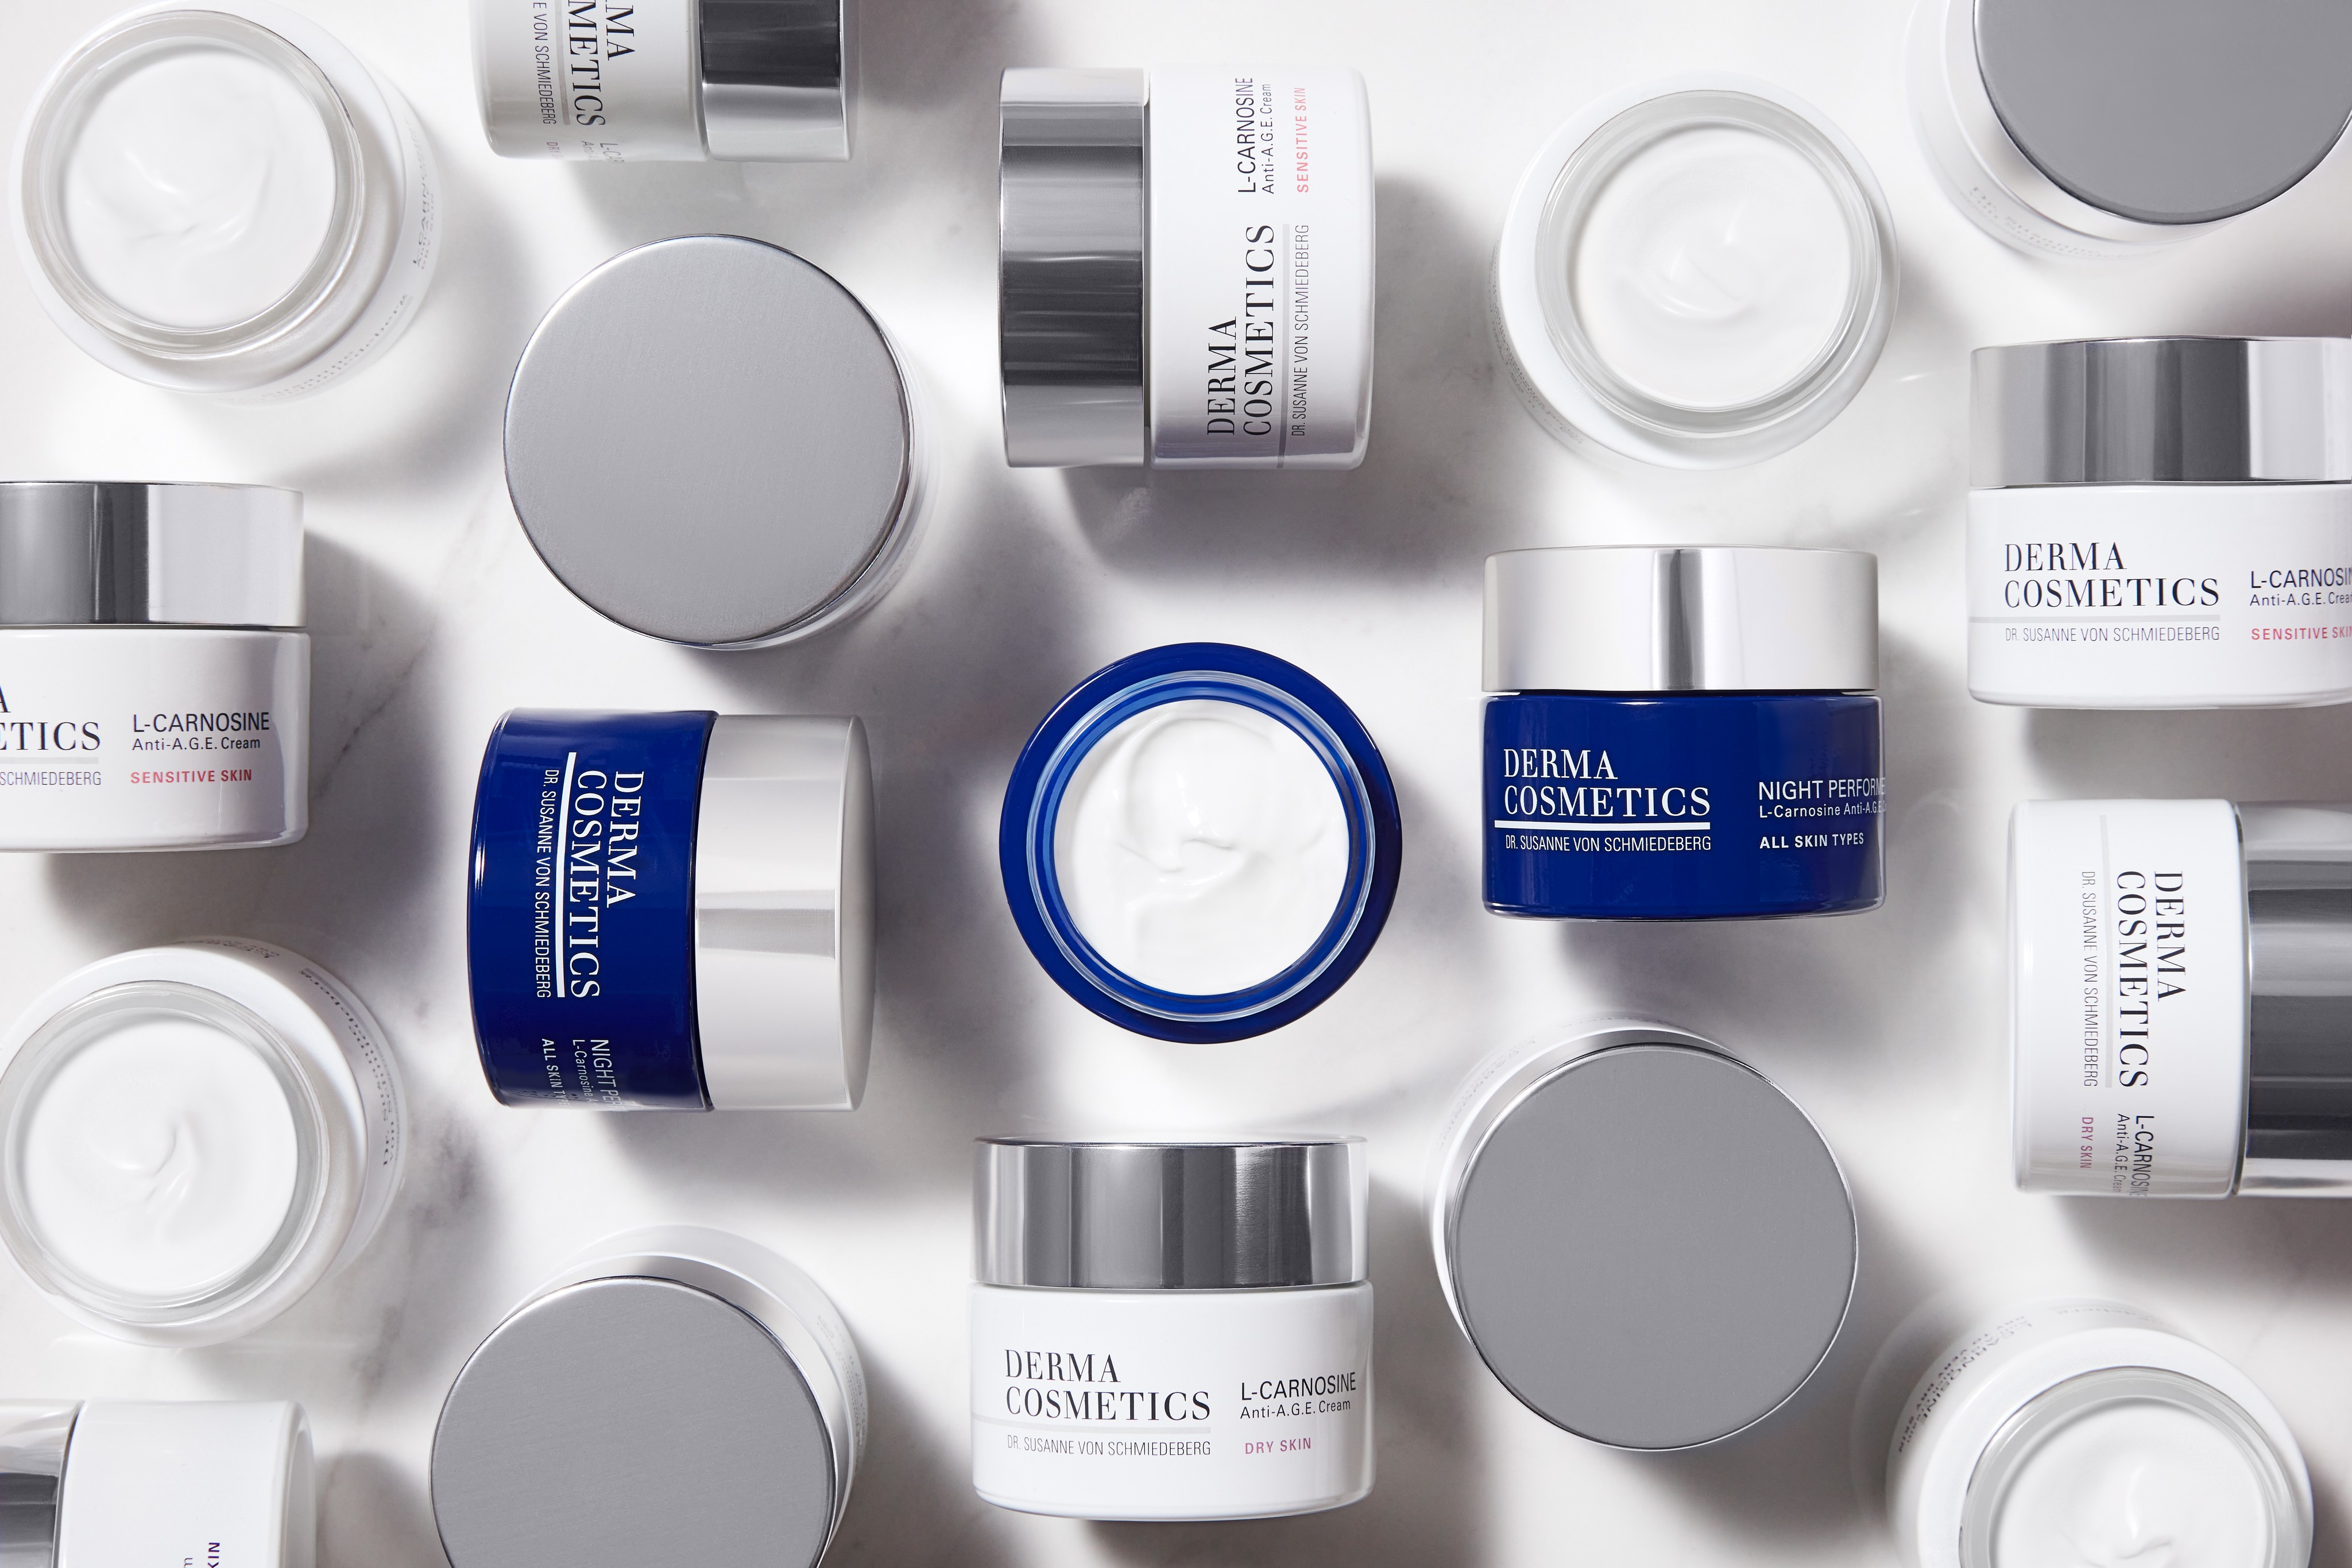 Skincare-product-dermacosmetics-all-creams-and-night-performer-topshot-unlimited-Web-Rendition